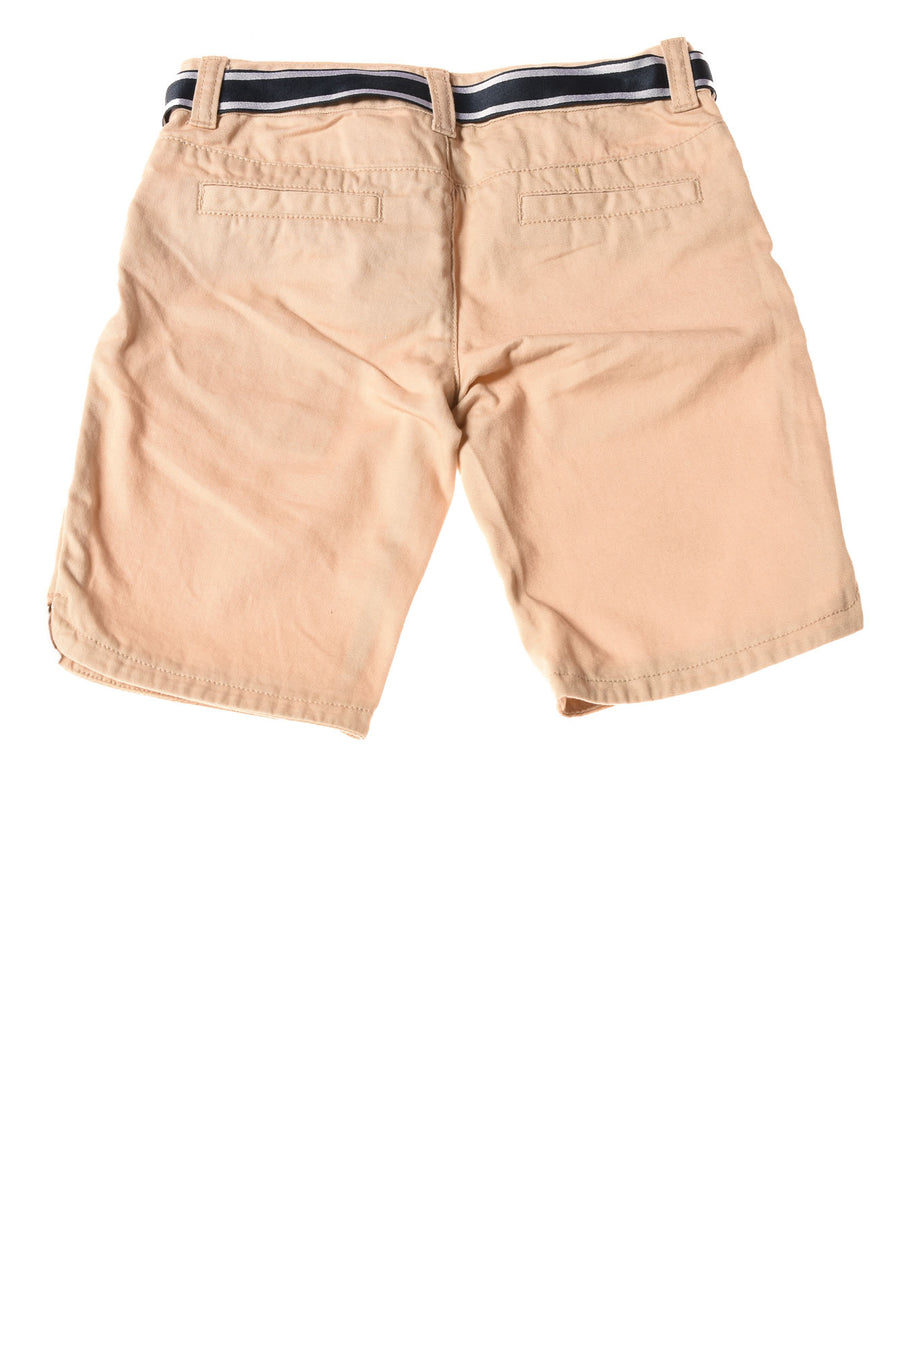 USED Crazy 8 Toddler Boy's Shorts 6 Tan